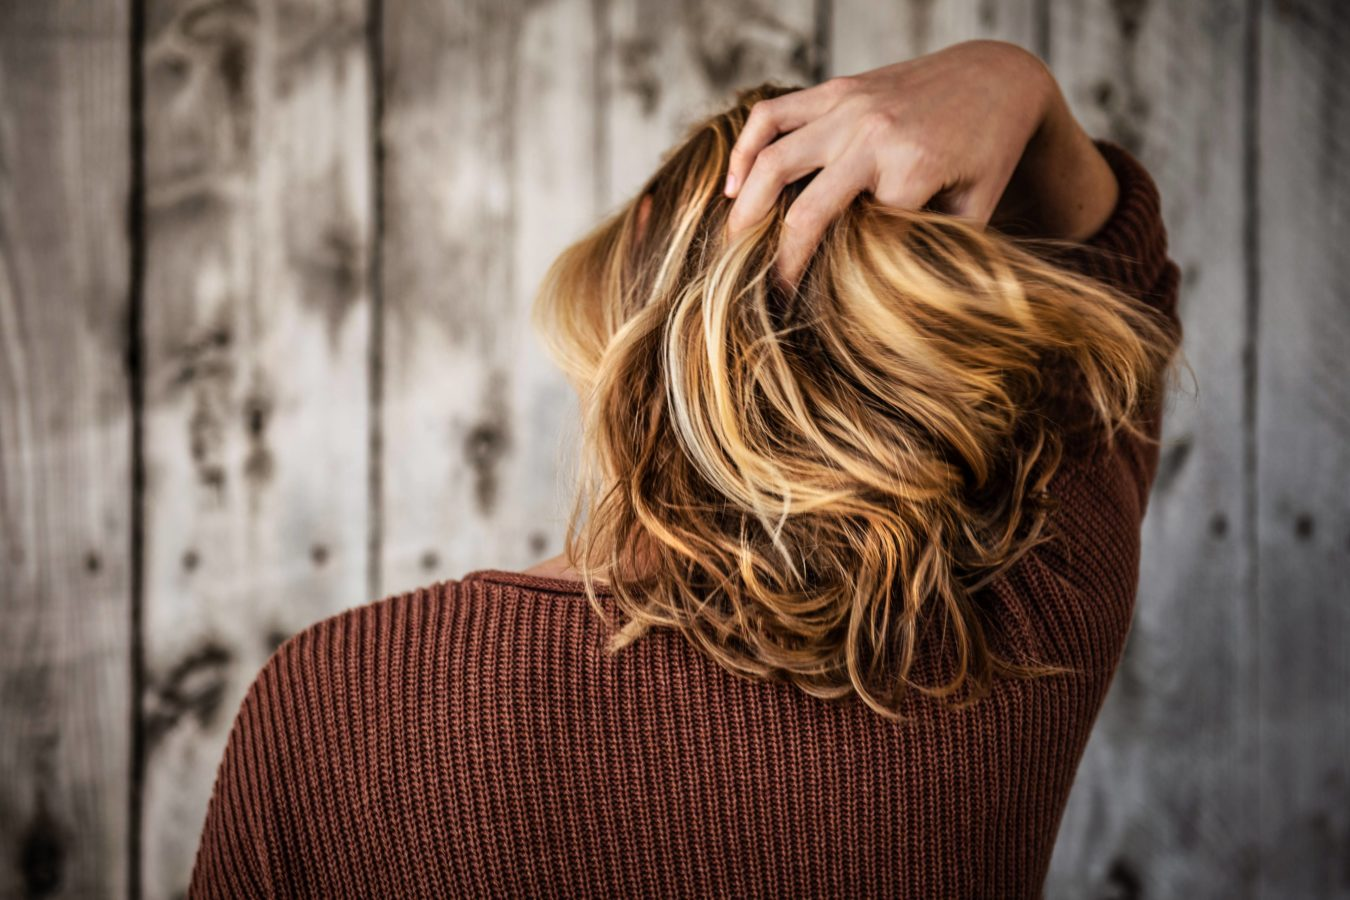 Hair oils are the perfect solution for your dry, damaged tresses